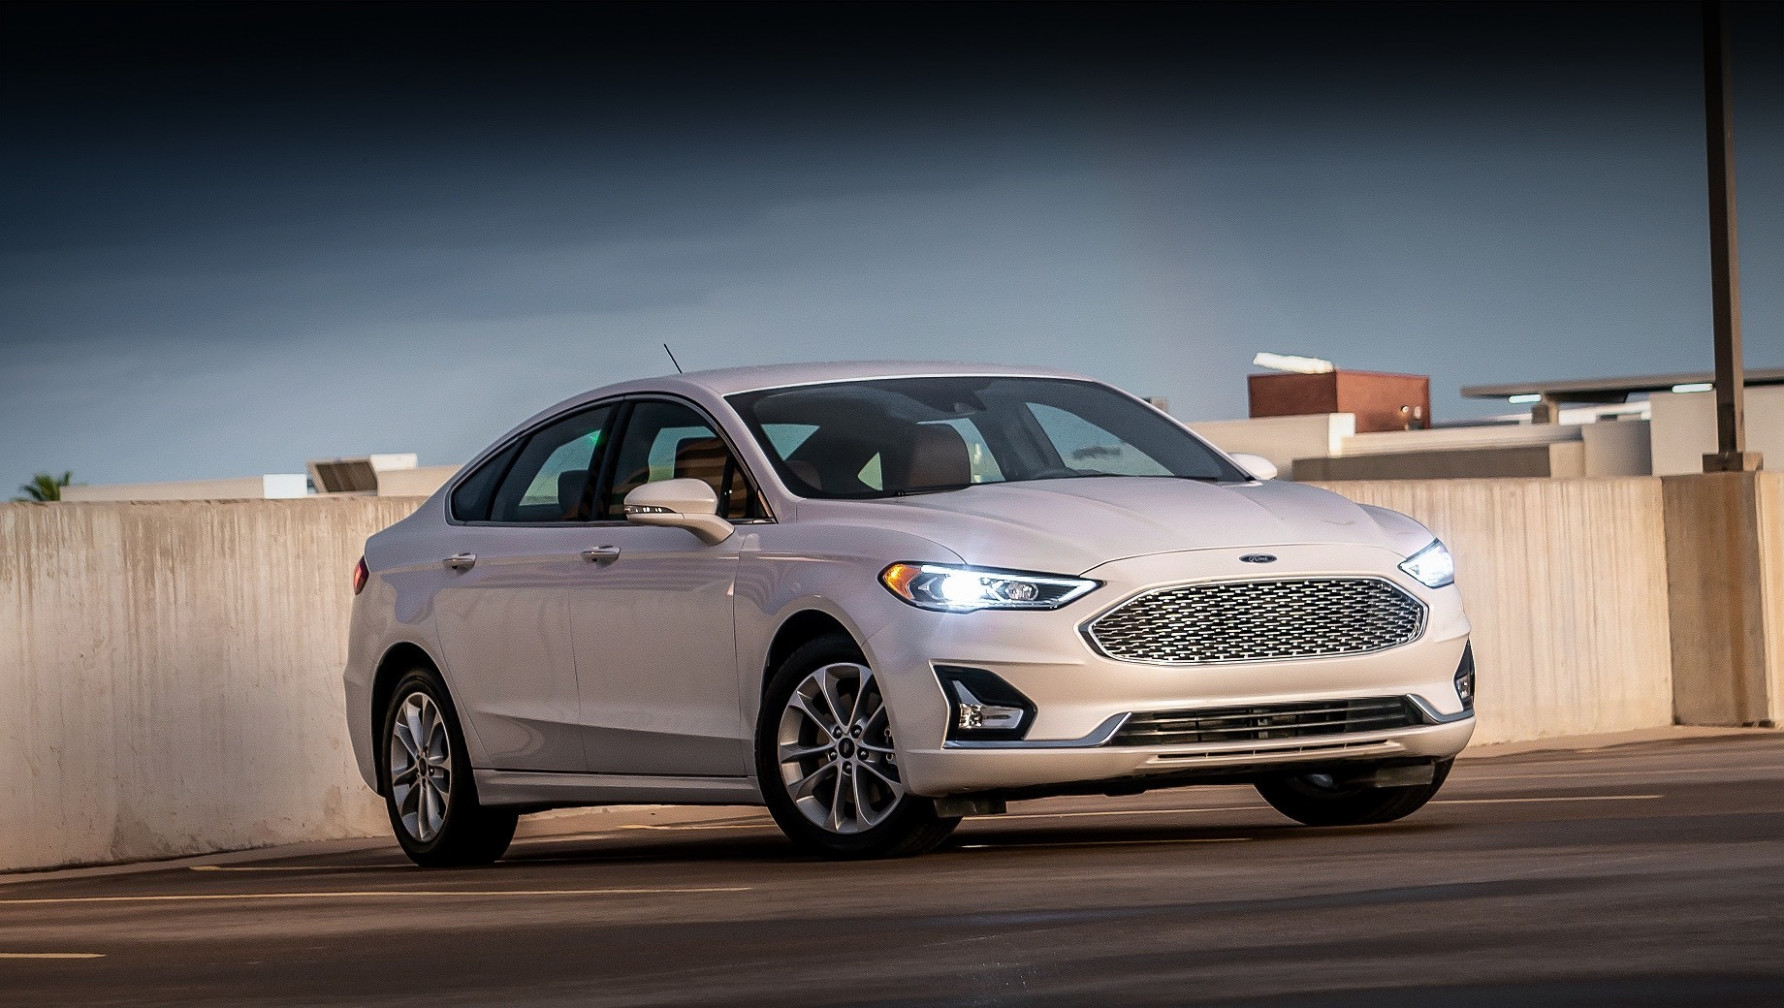 Exterior and Interior 2022 Ford Fusion